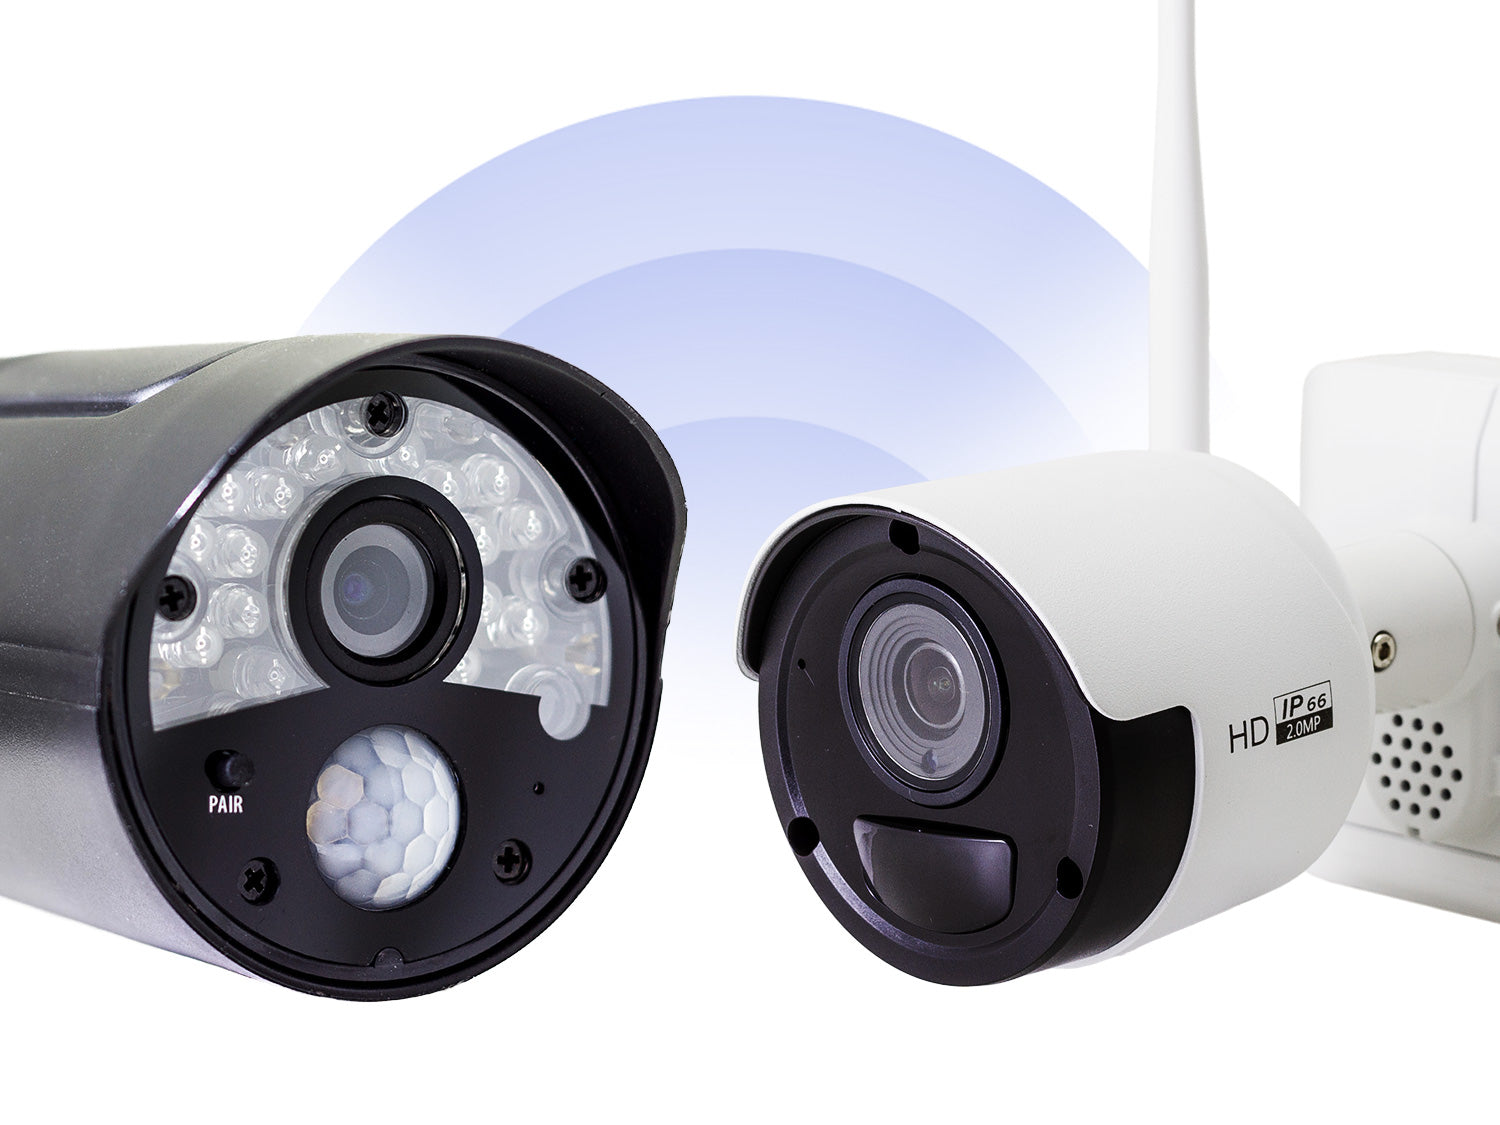 Wireless vs Wire Free CCTV – What's the difference?